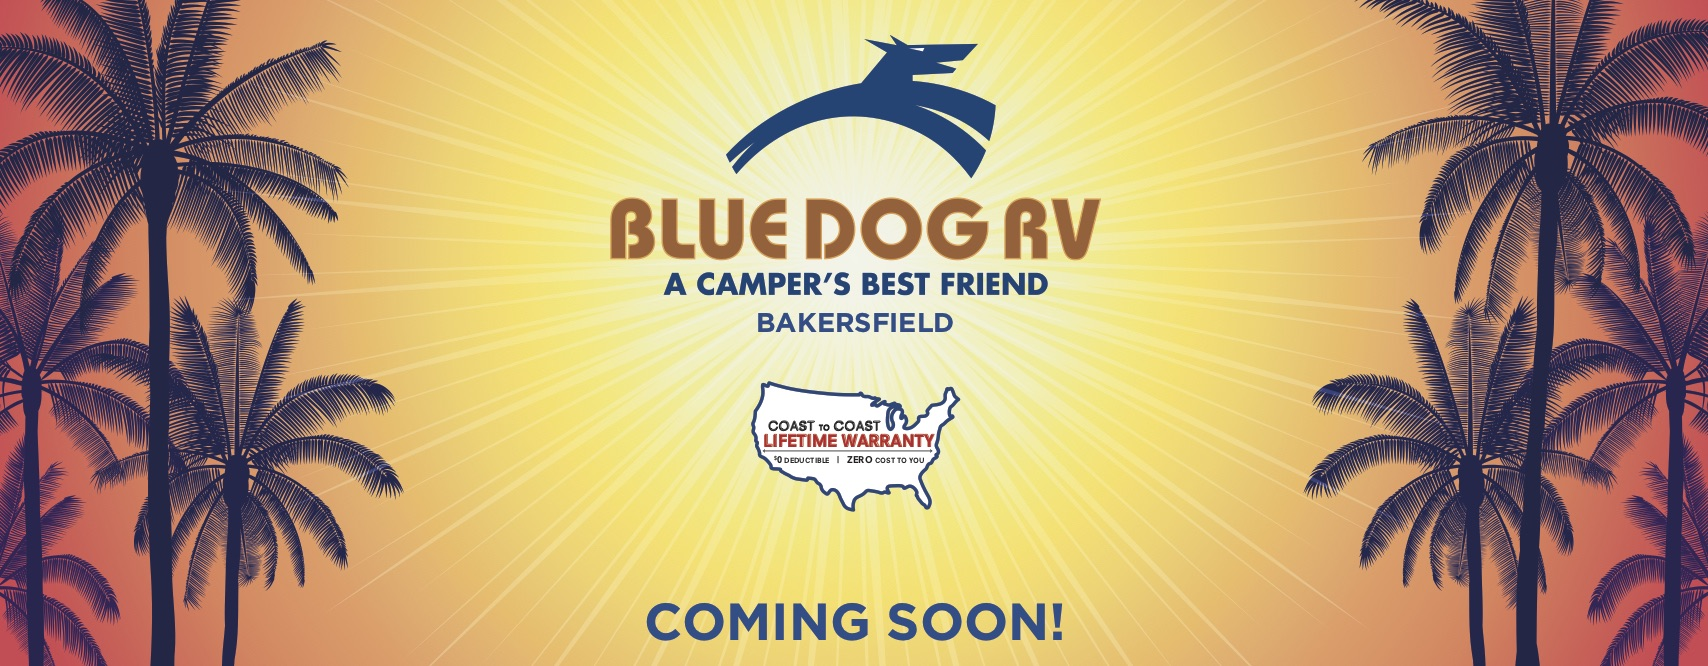 Blue Dog RV Bakersfield